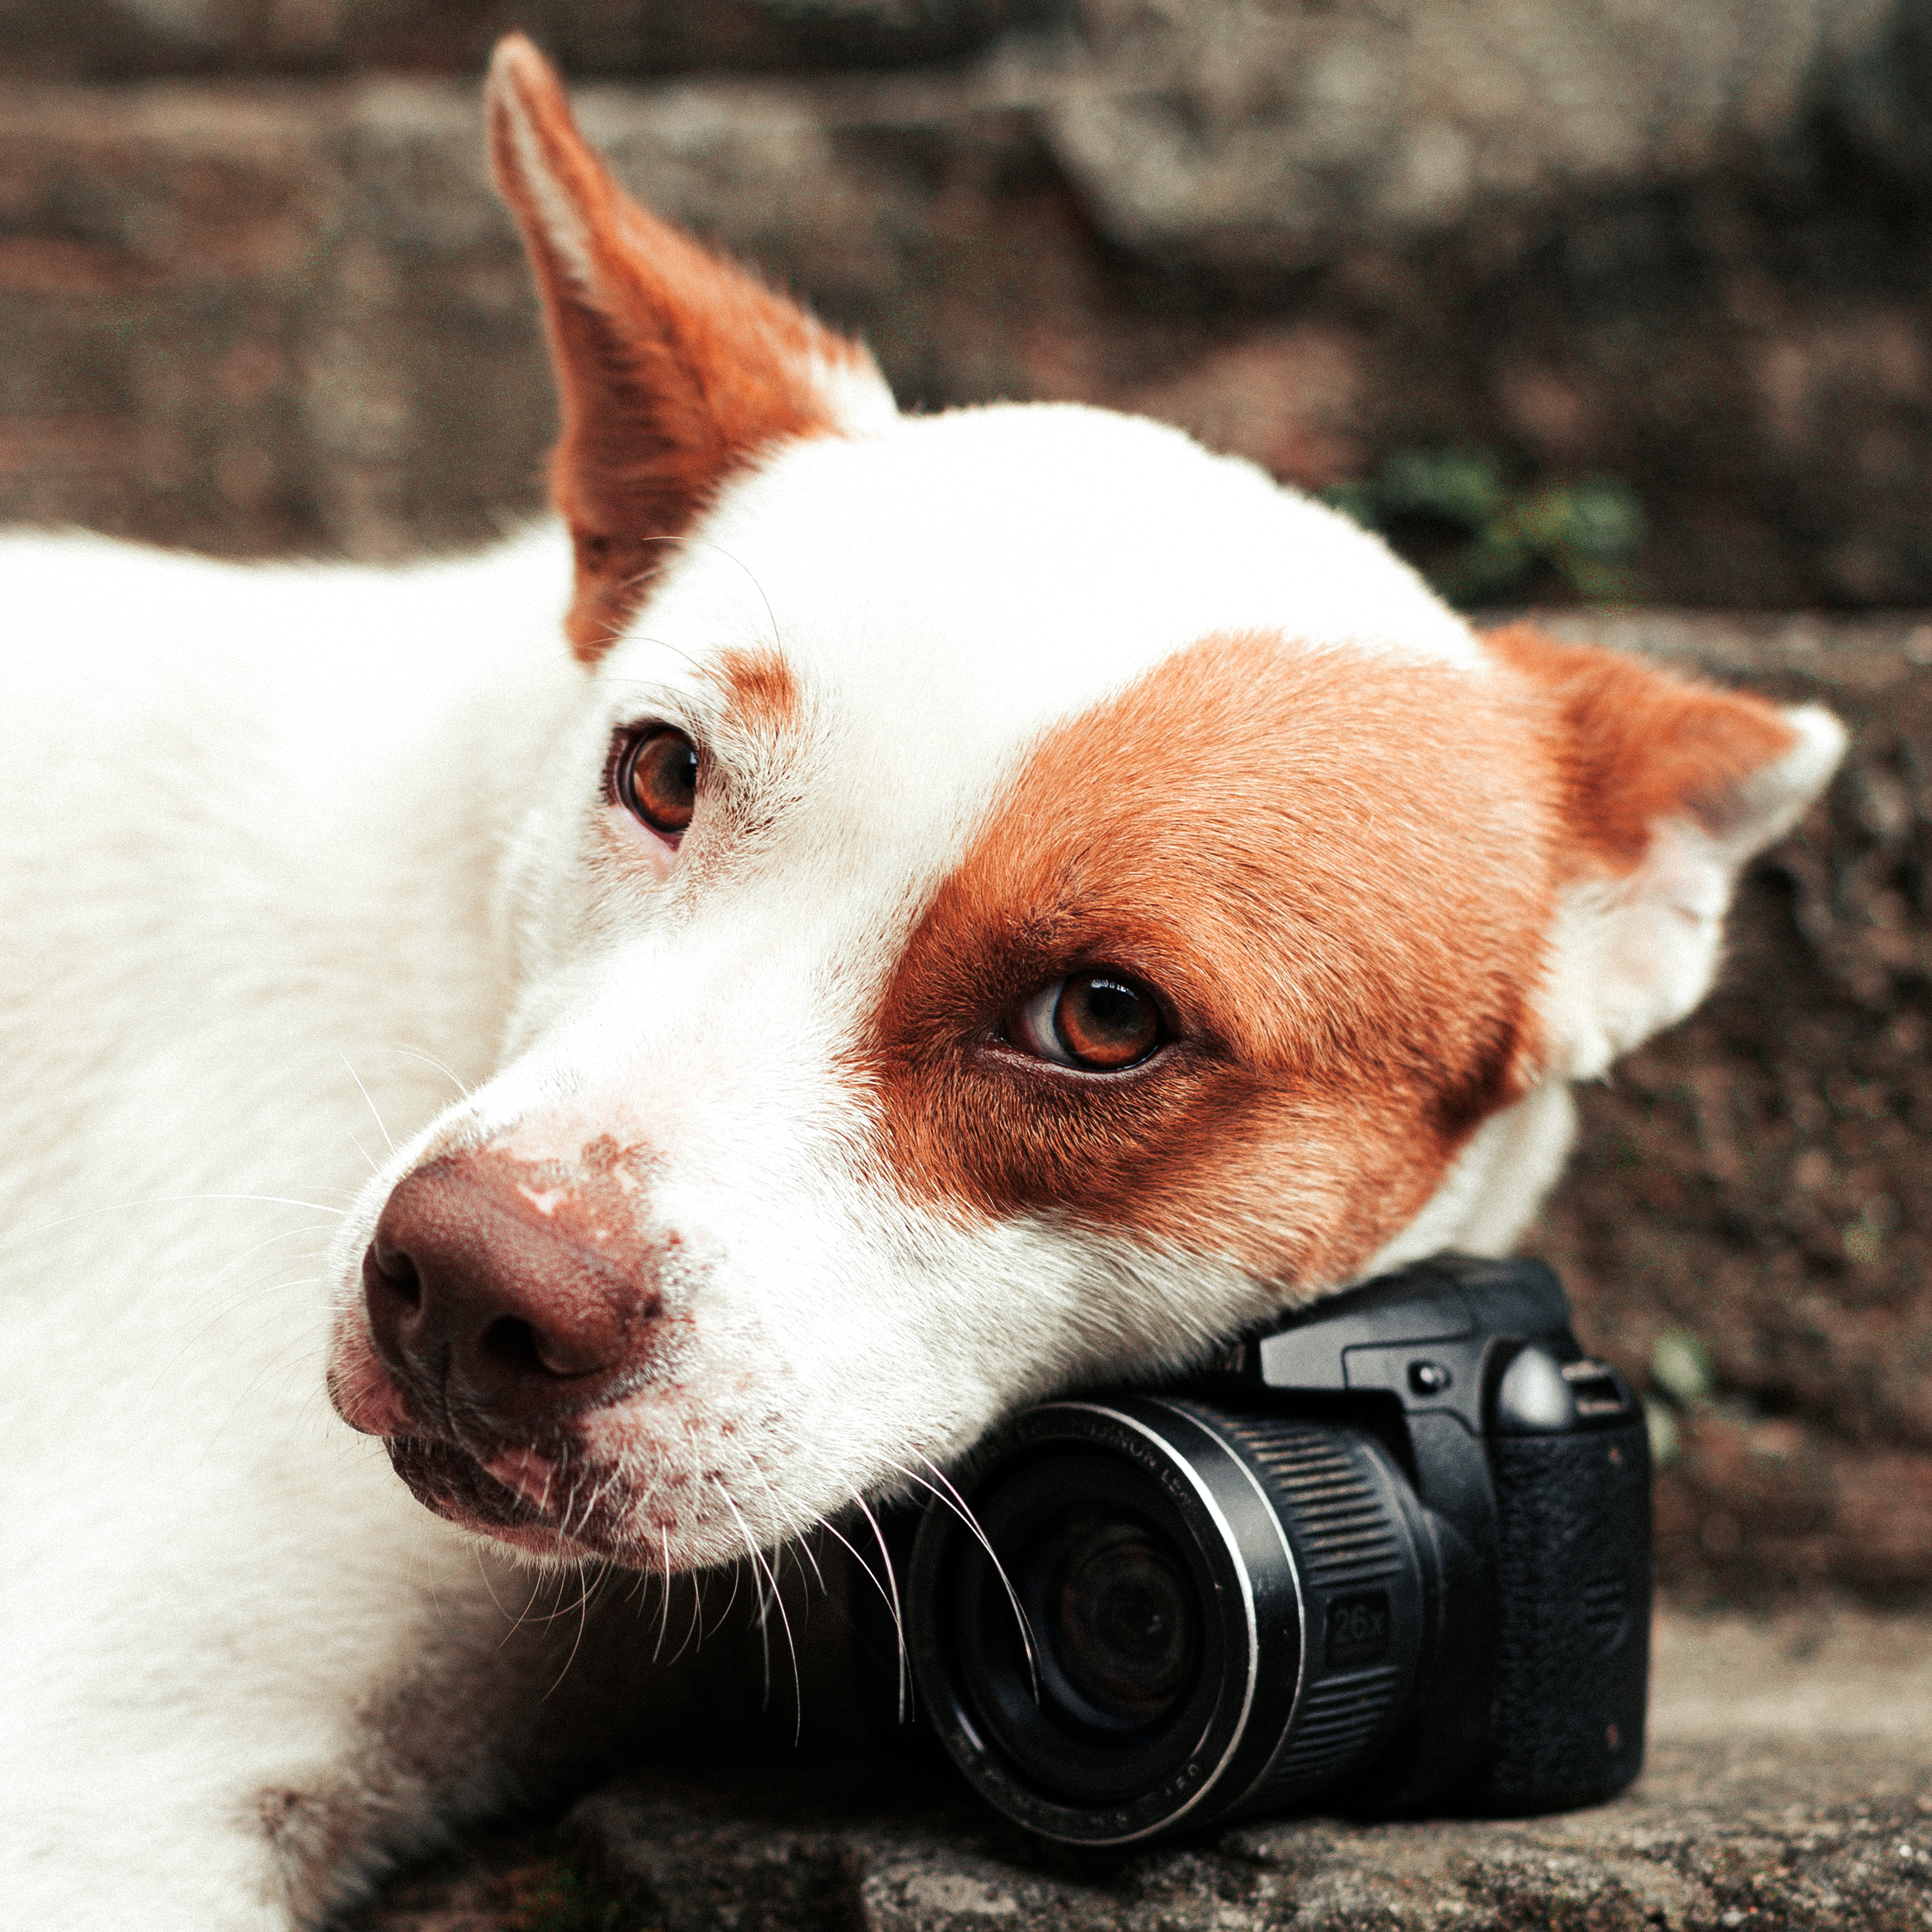 A white dog with red spots on her eyes and ears lays her head gently on an SLR camera. They both sit on cement stairs and are bathed in natural light.